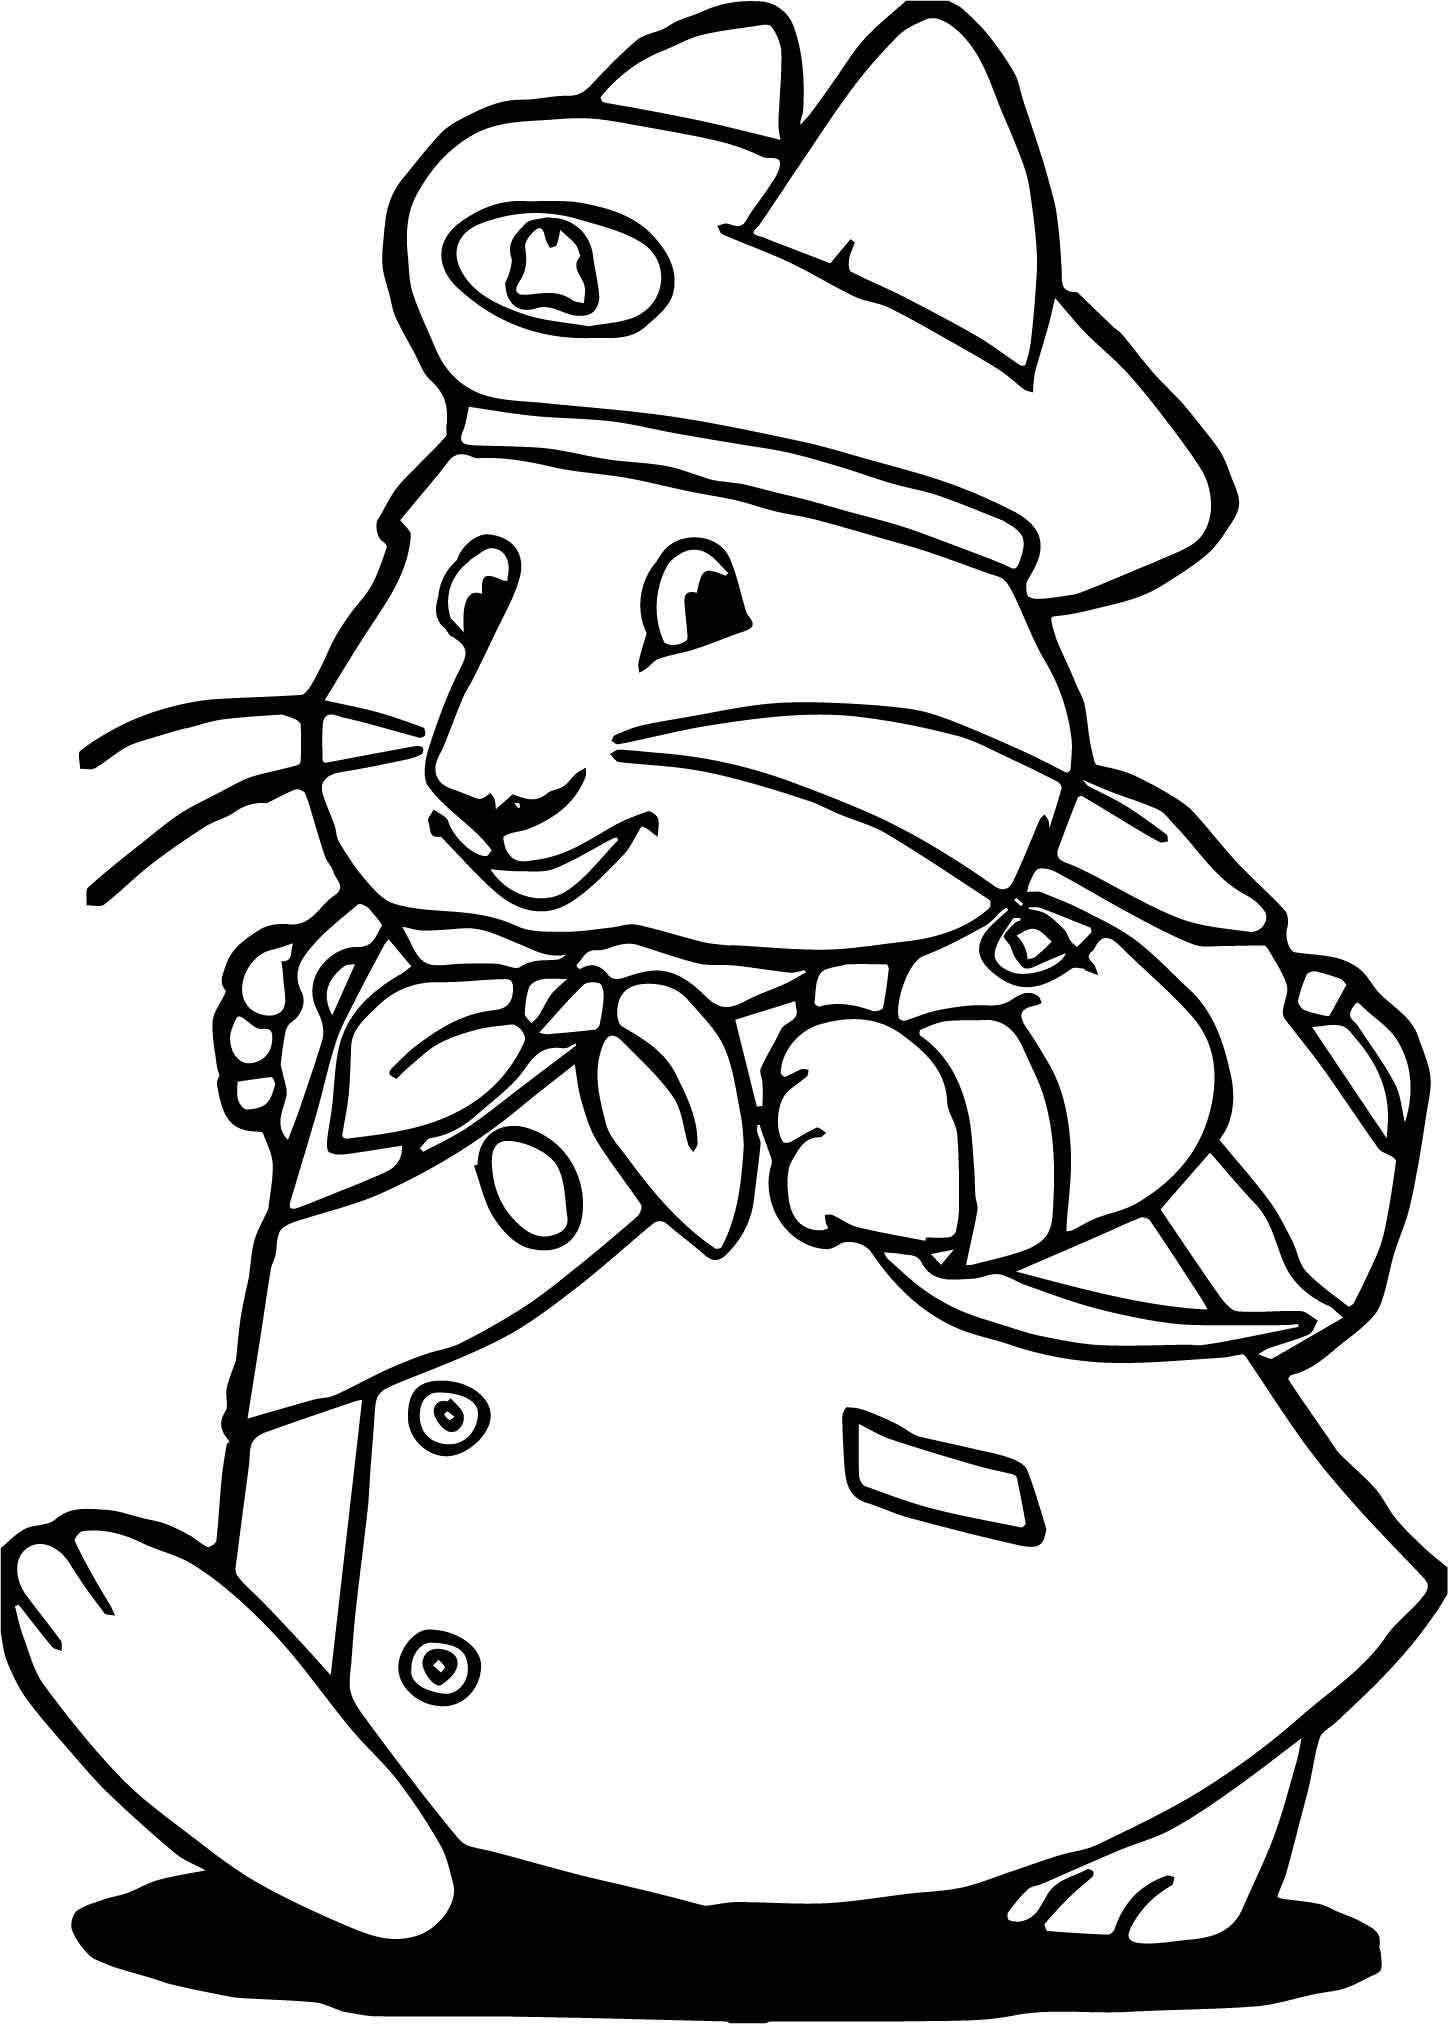 Max And Ruby Going To School Coloring Page Wecoloringpage